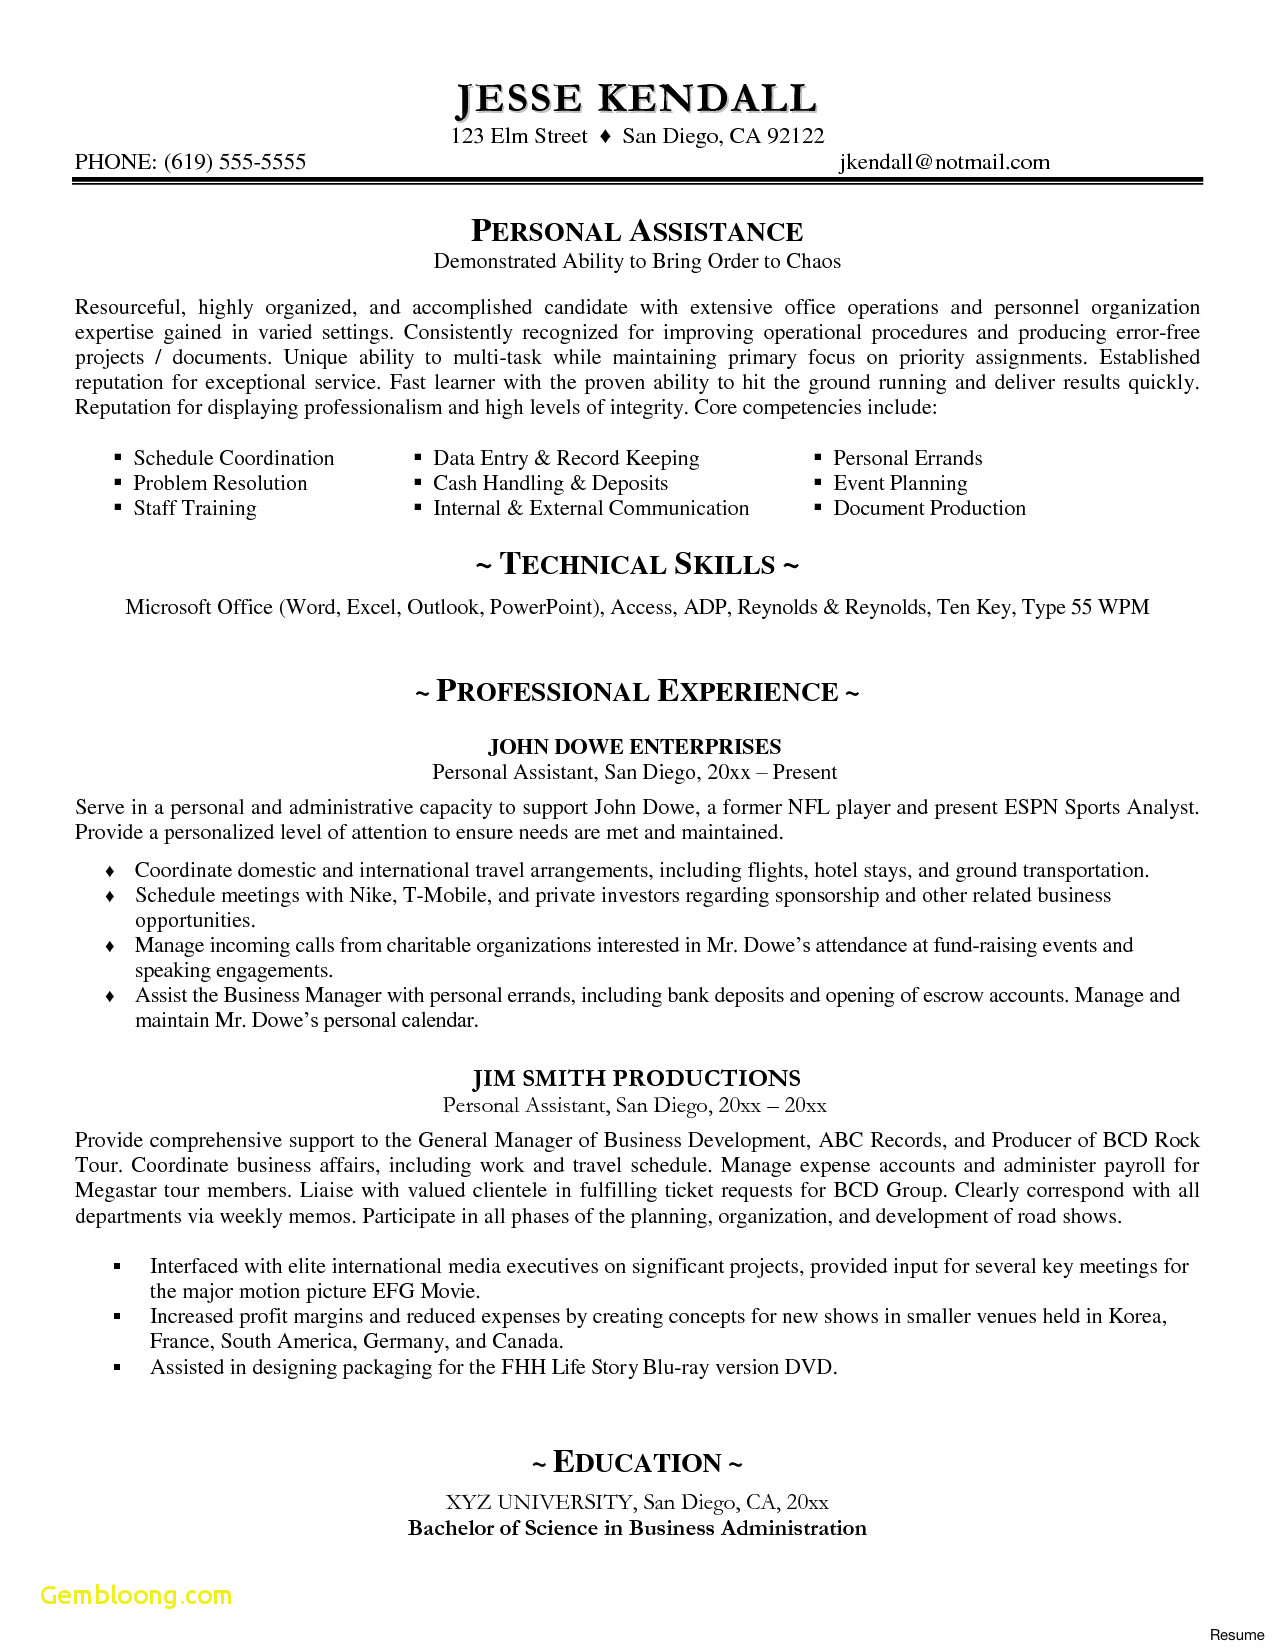 Motivation Letter Template Doc - Resume Template Word Doc New Executive Resume Templates Word Od